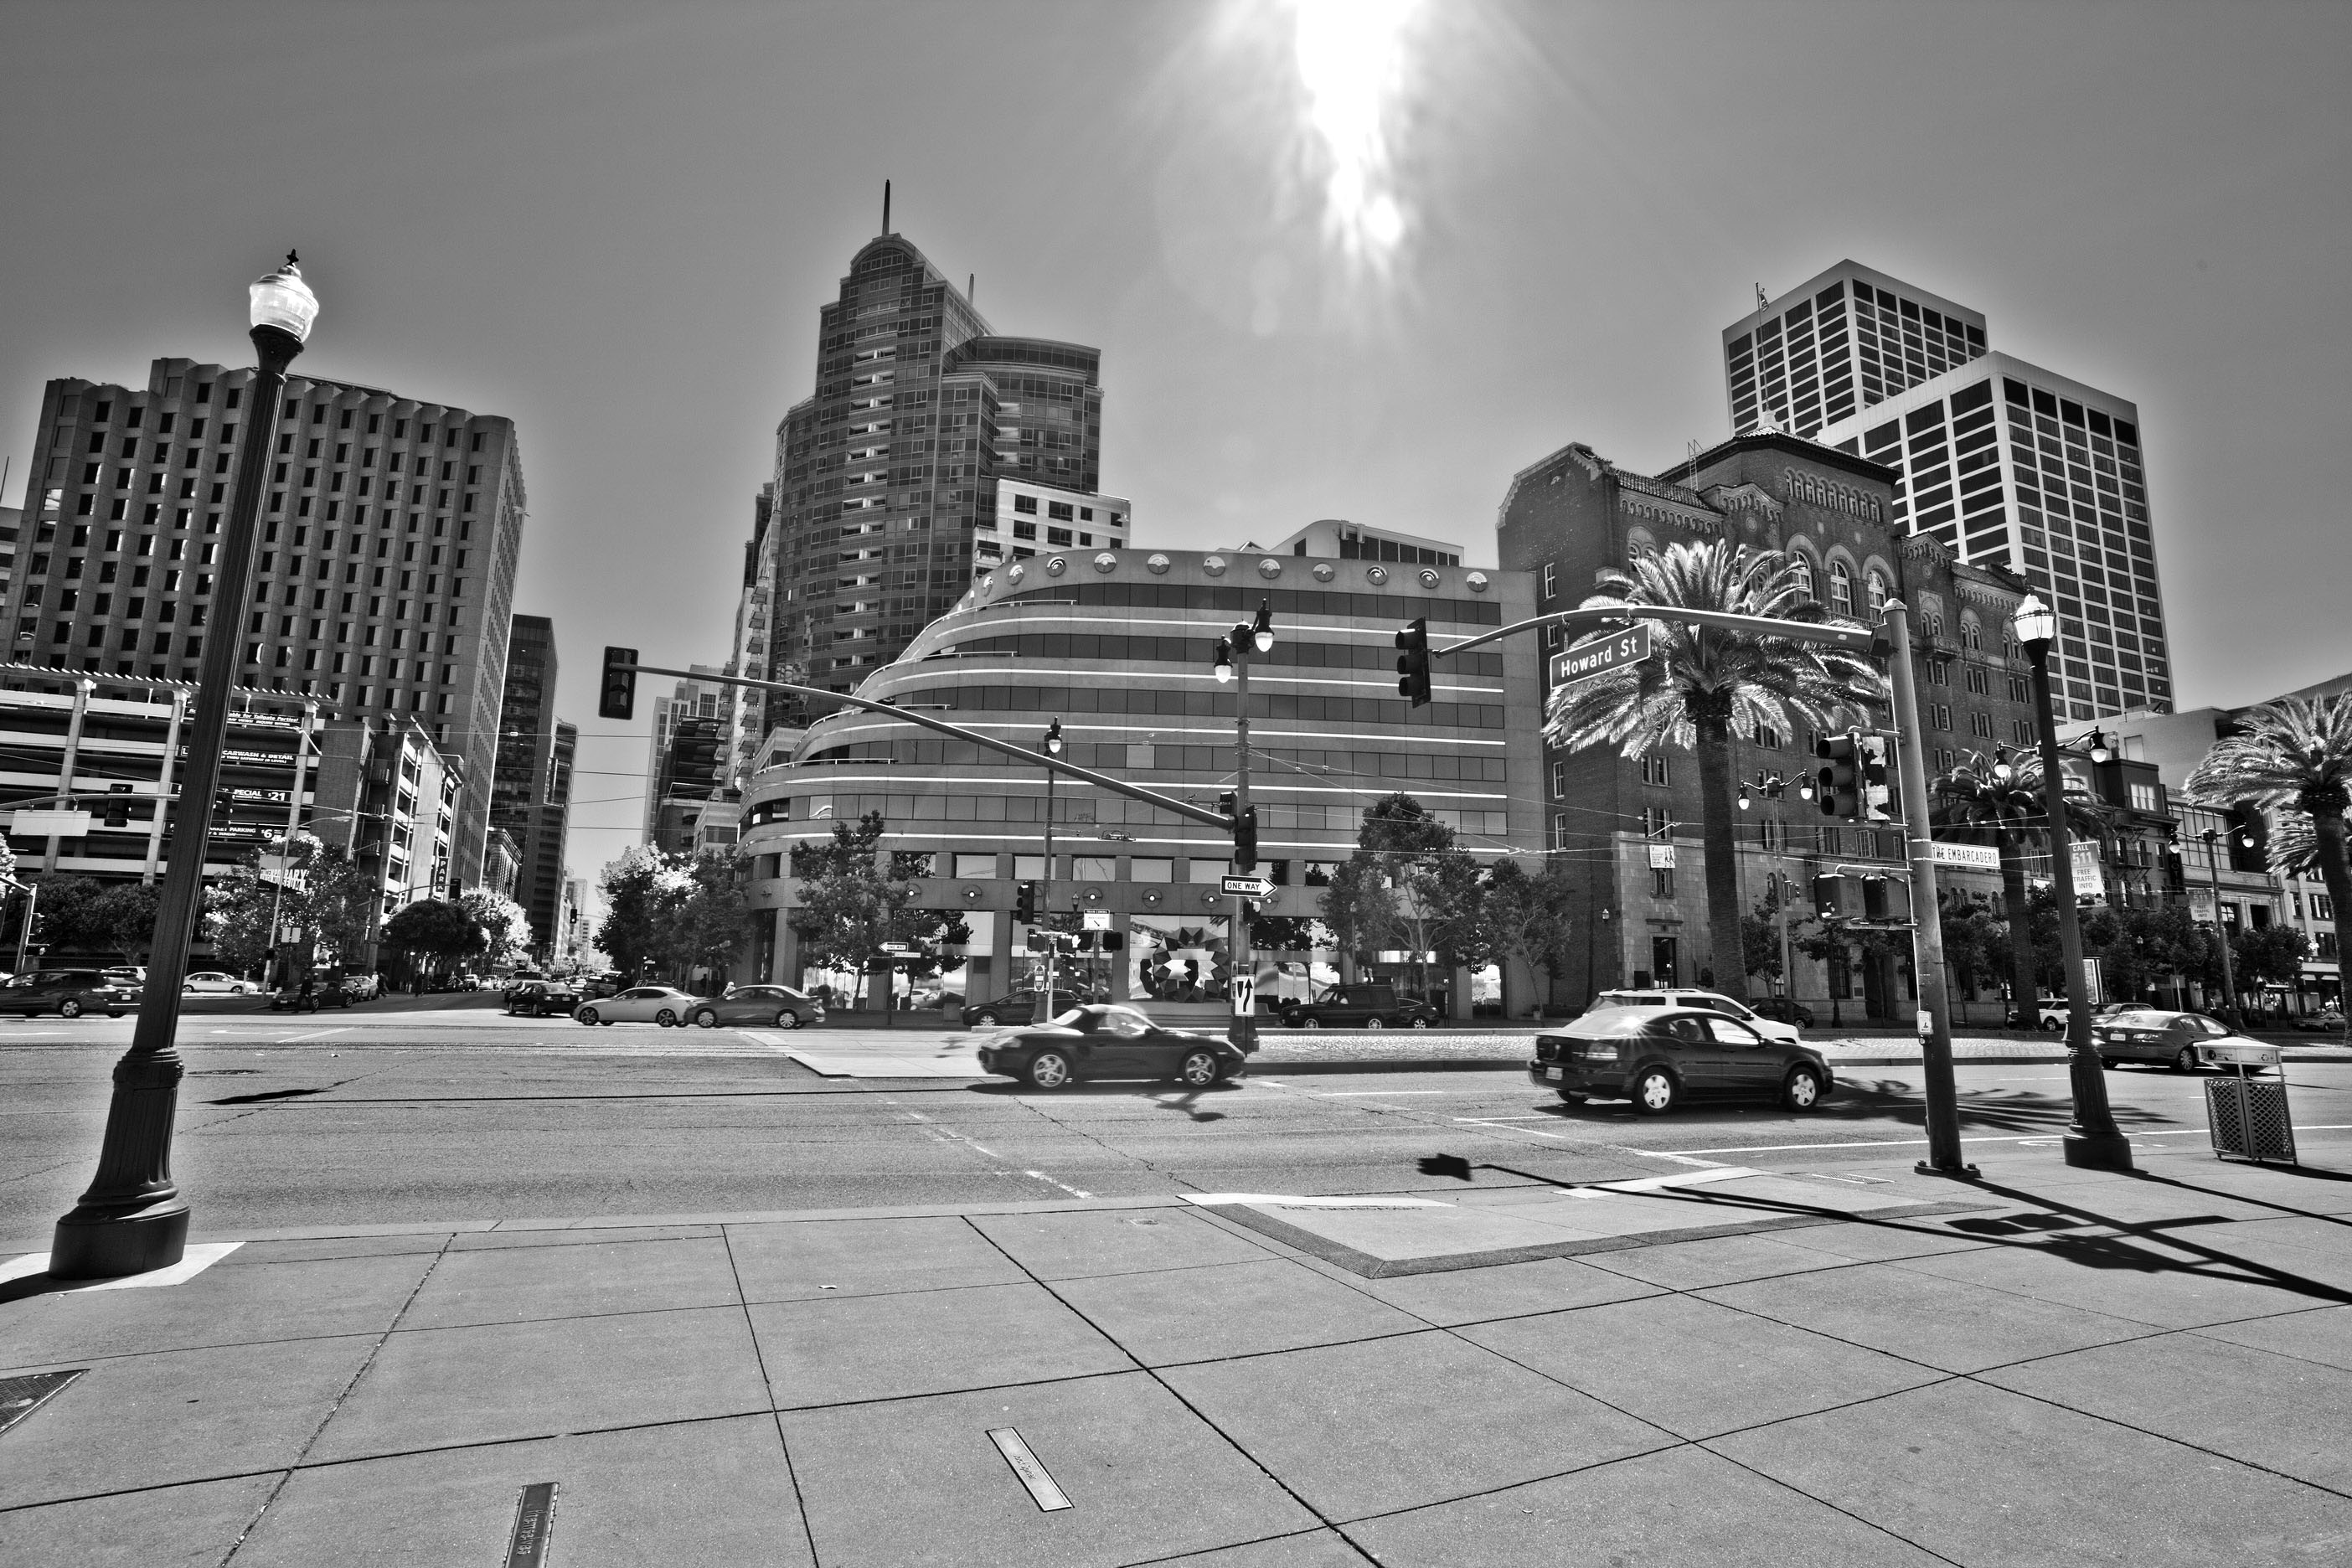 Architecture cnr Howard and The Embarcadero San Francisco CA July 2011 11